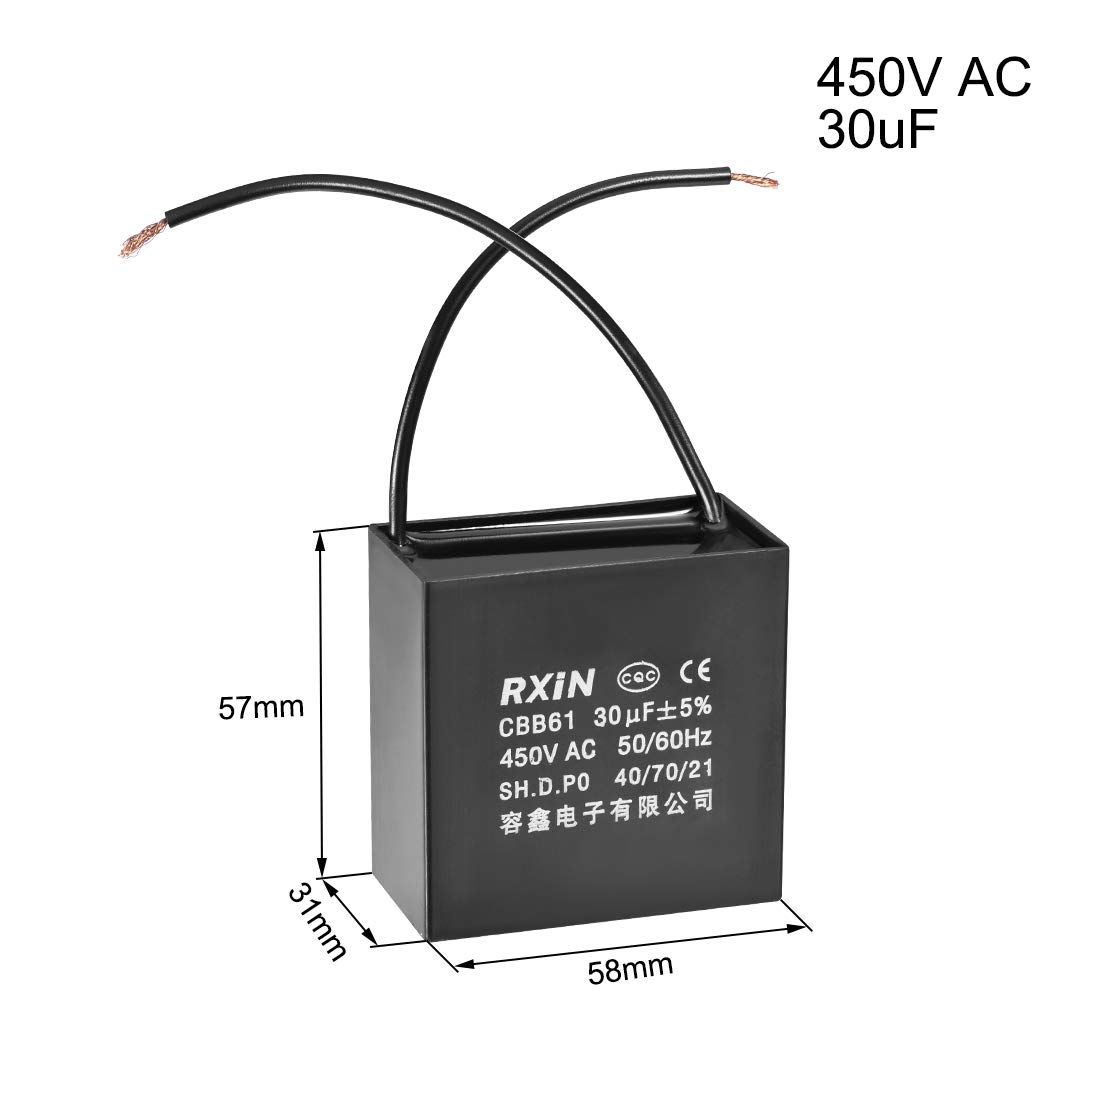 uxcell CBB61 Run Capacitor 450V AC 24uF 2-Wire Metallized Polypropylene Film Capacitors for Ceiling Fan 2Pcs